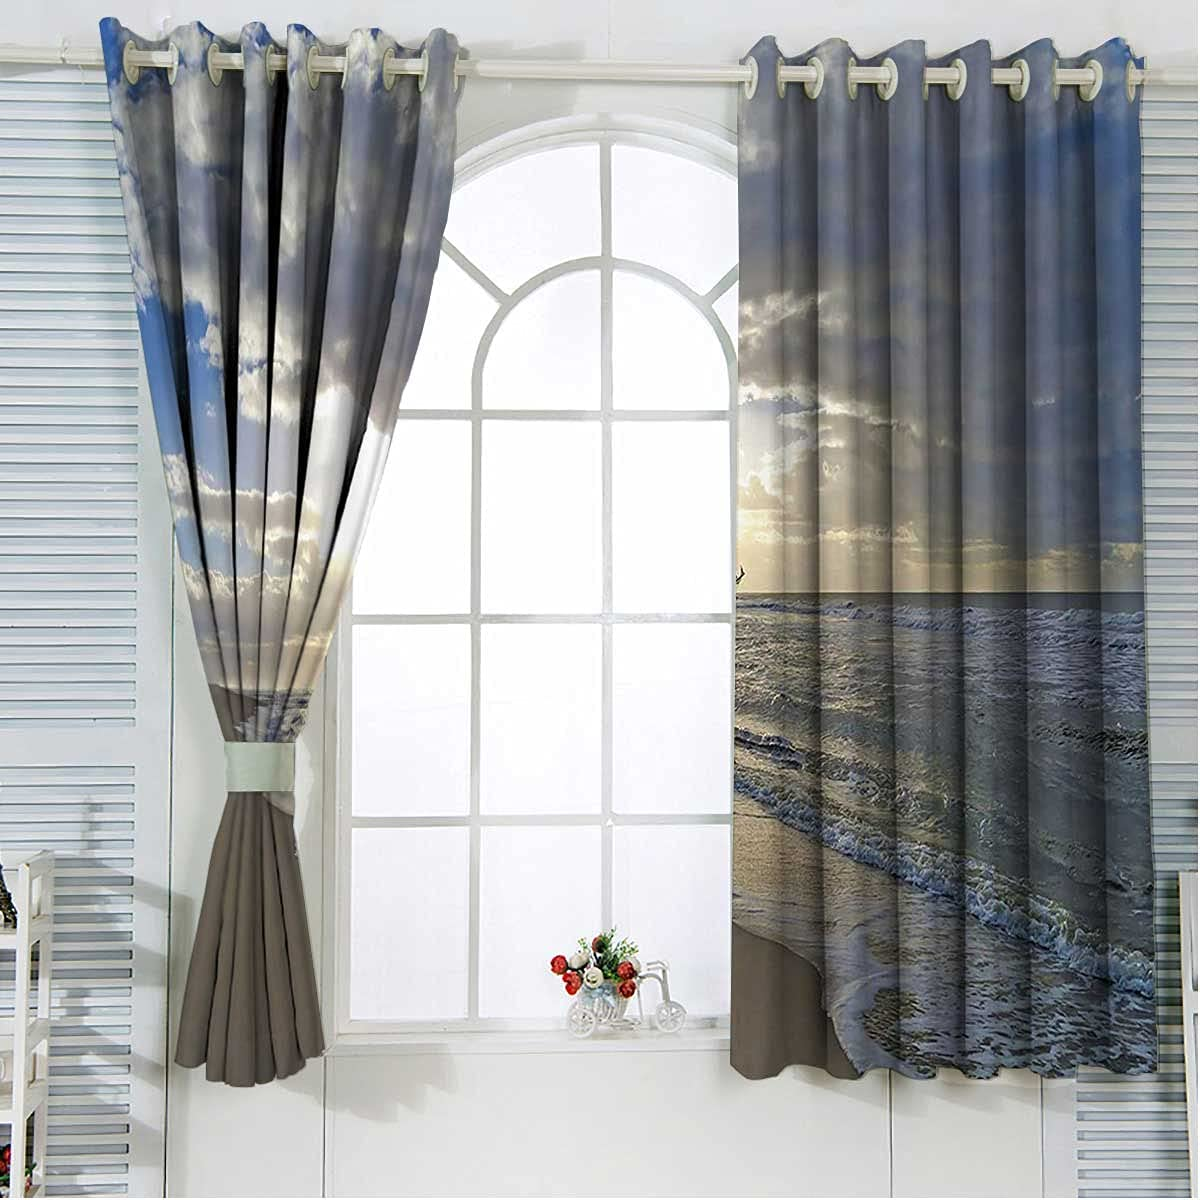 Nautical Decor Ranking TOP18 Black Curtains for Bedroom 72 Length Be Bombing new work Blue Inch